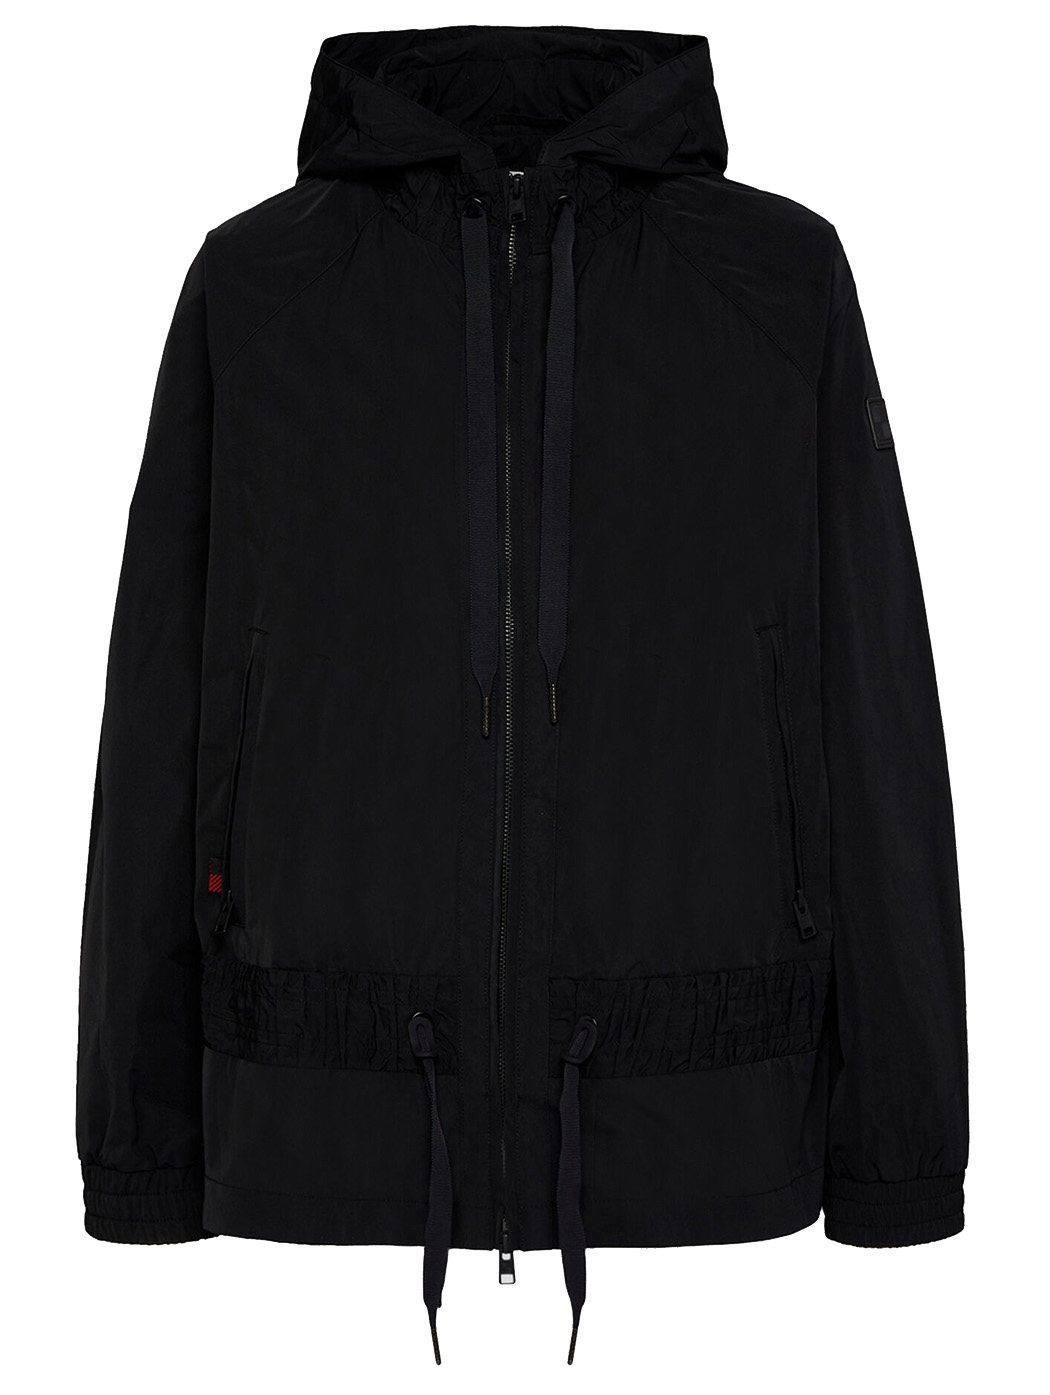 WOOLRICH WOMEN'S ERIE WINDBREAKER